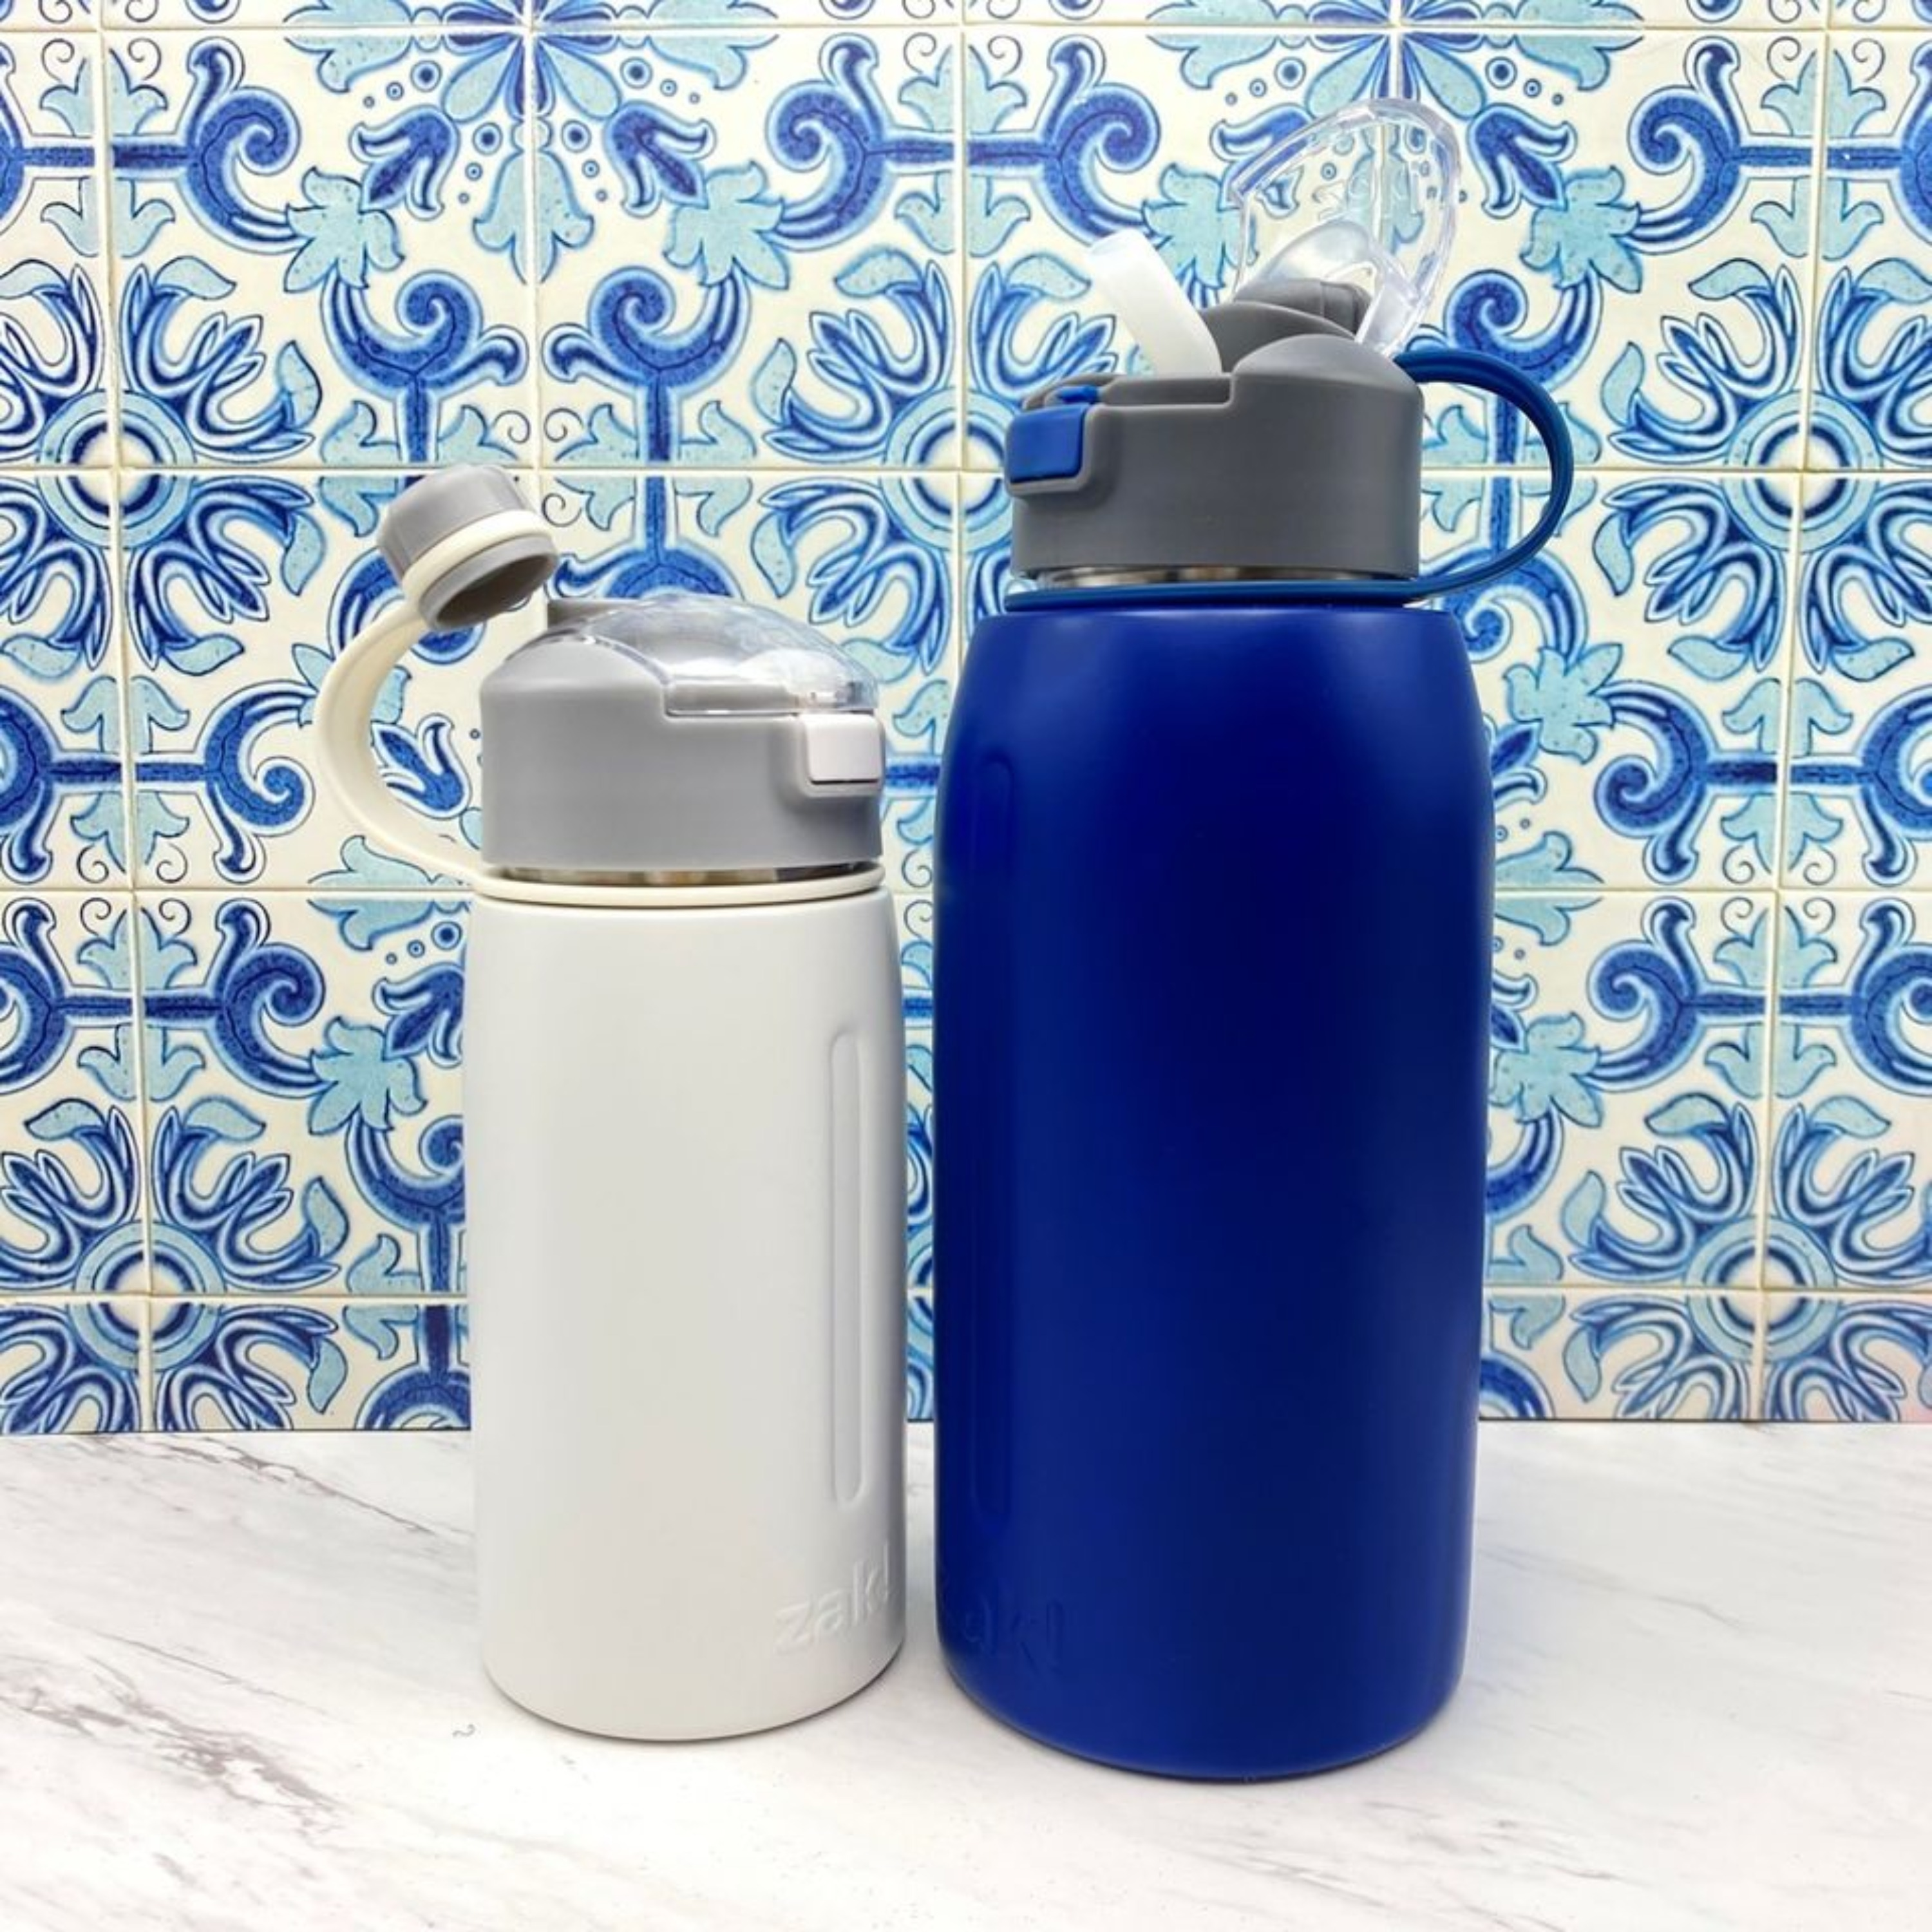 Genesis 12 ounce Vacuum Insulated Stainless Steel Tumbler, Gray slideshow image 11